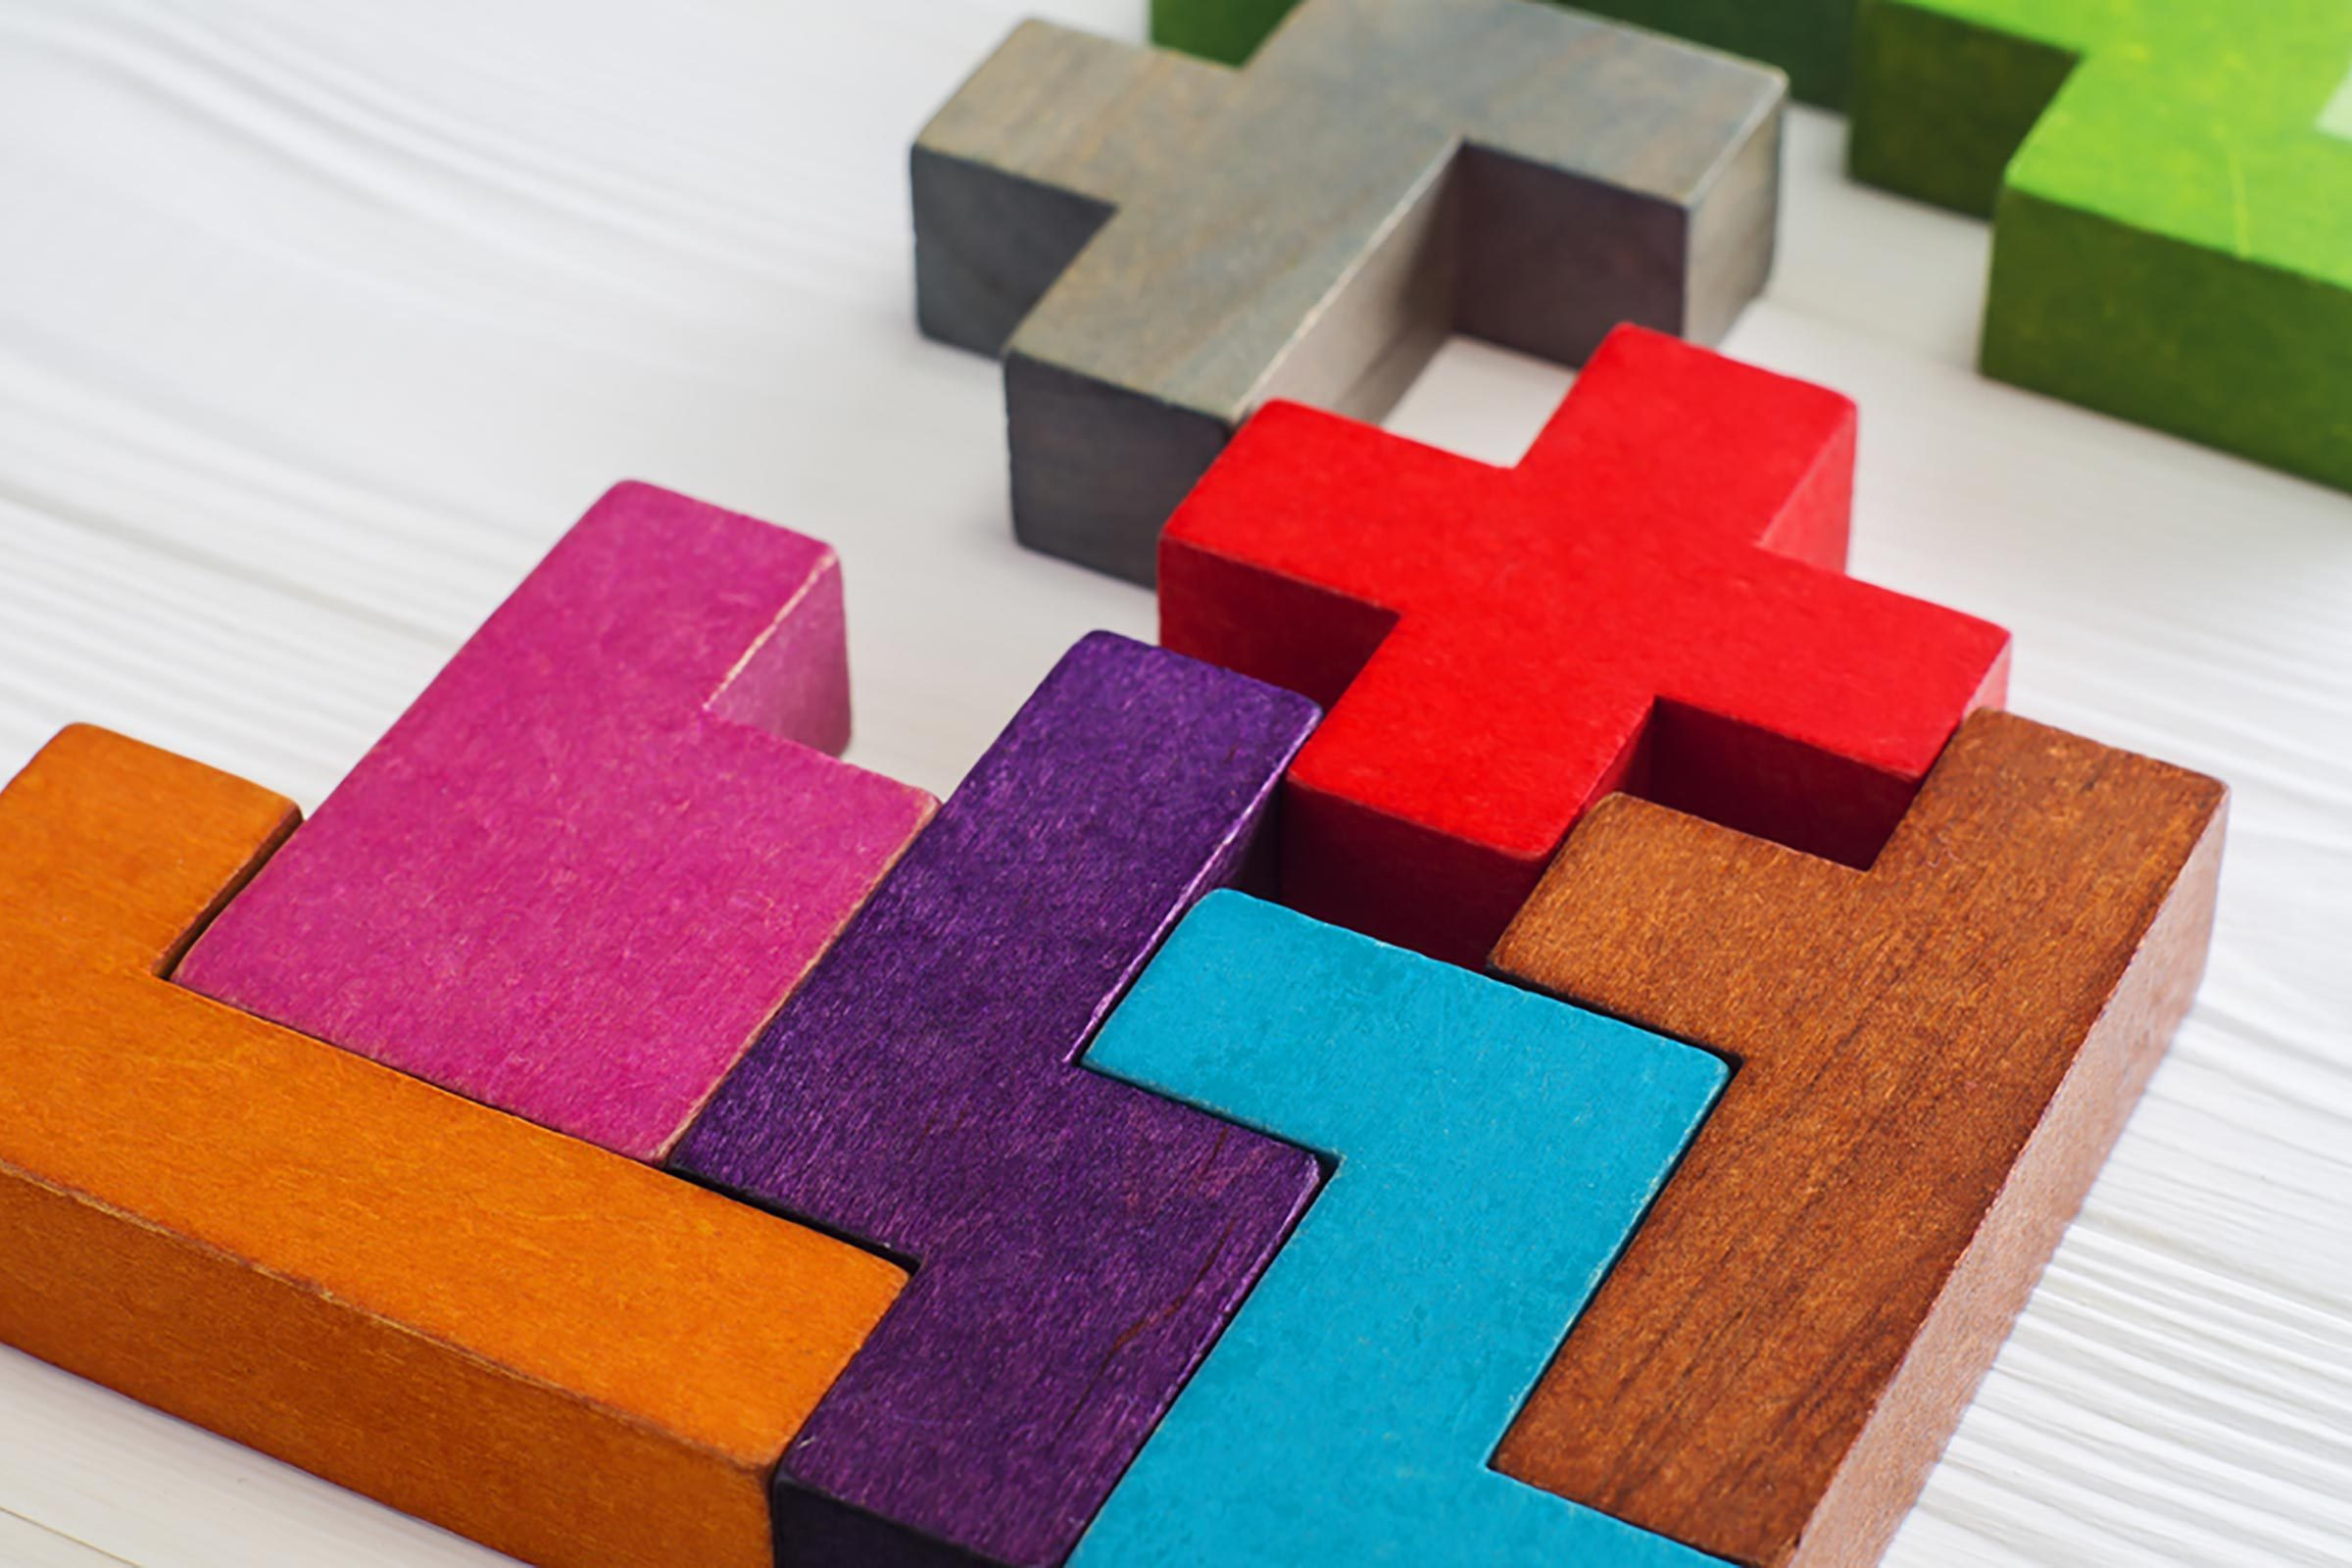 Tetris-like colored wooden blocks